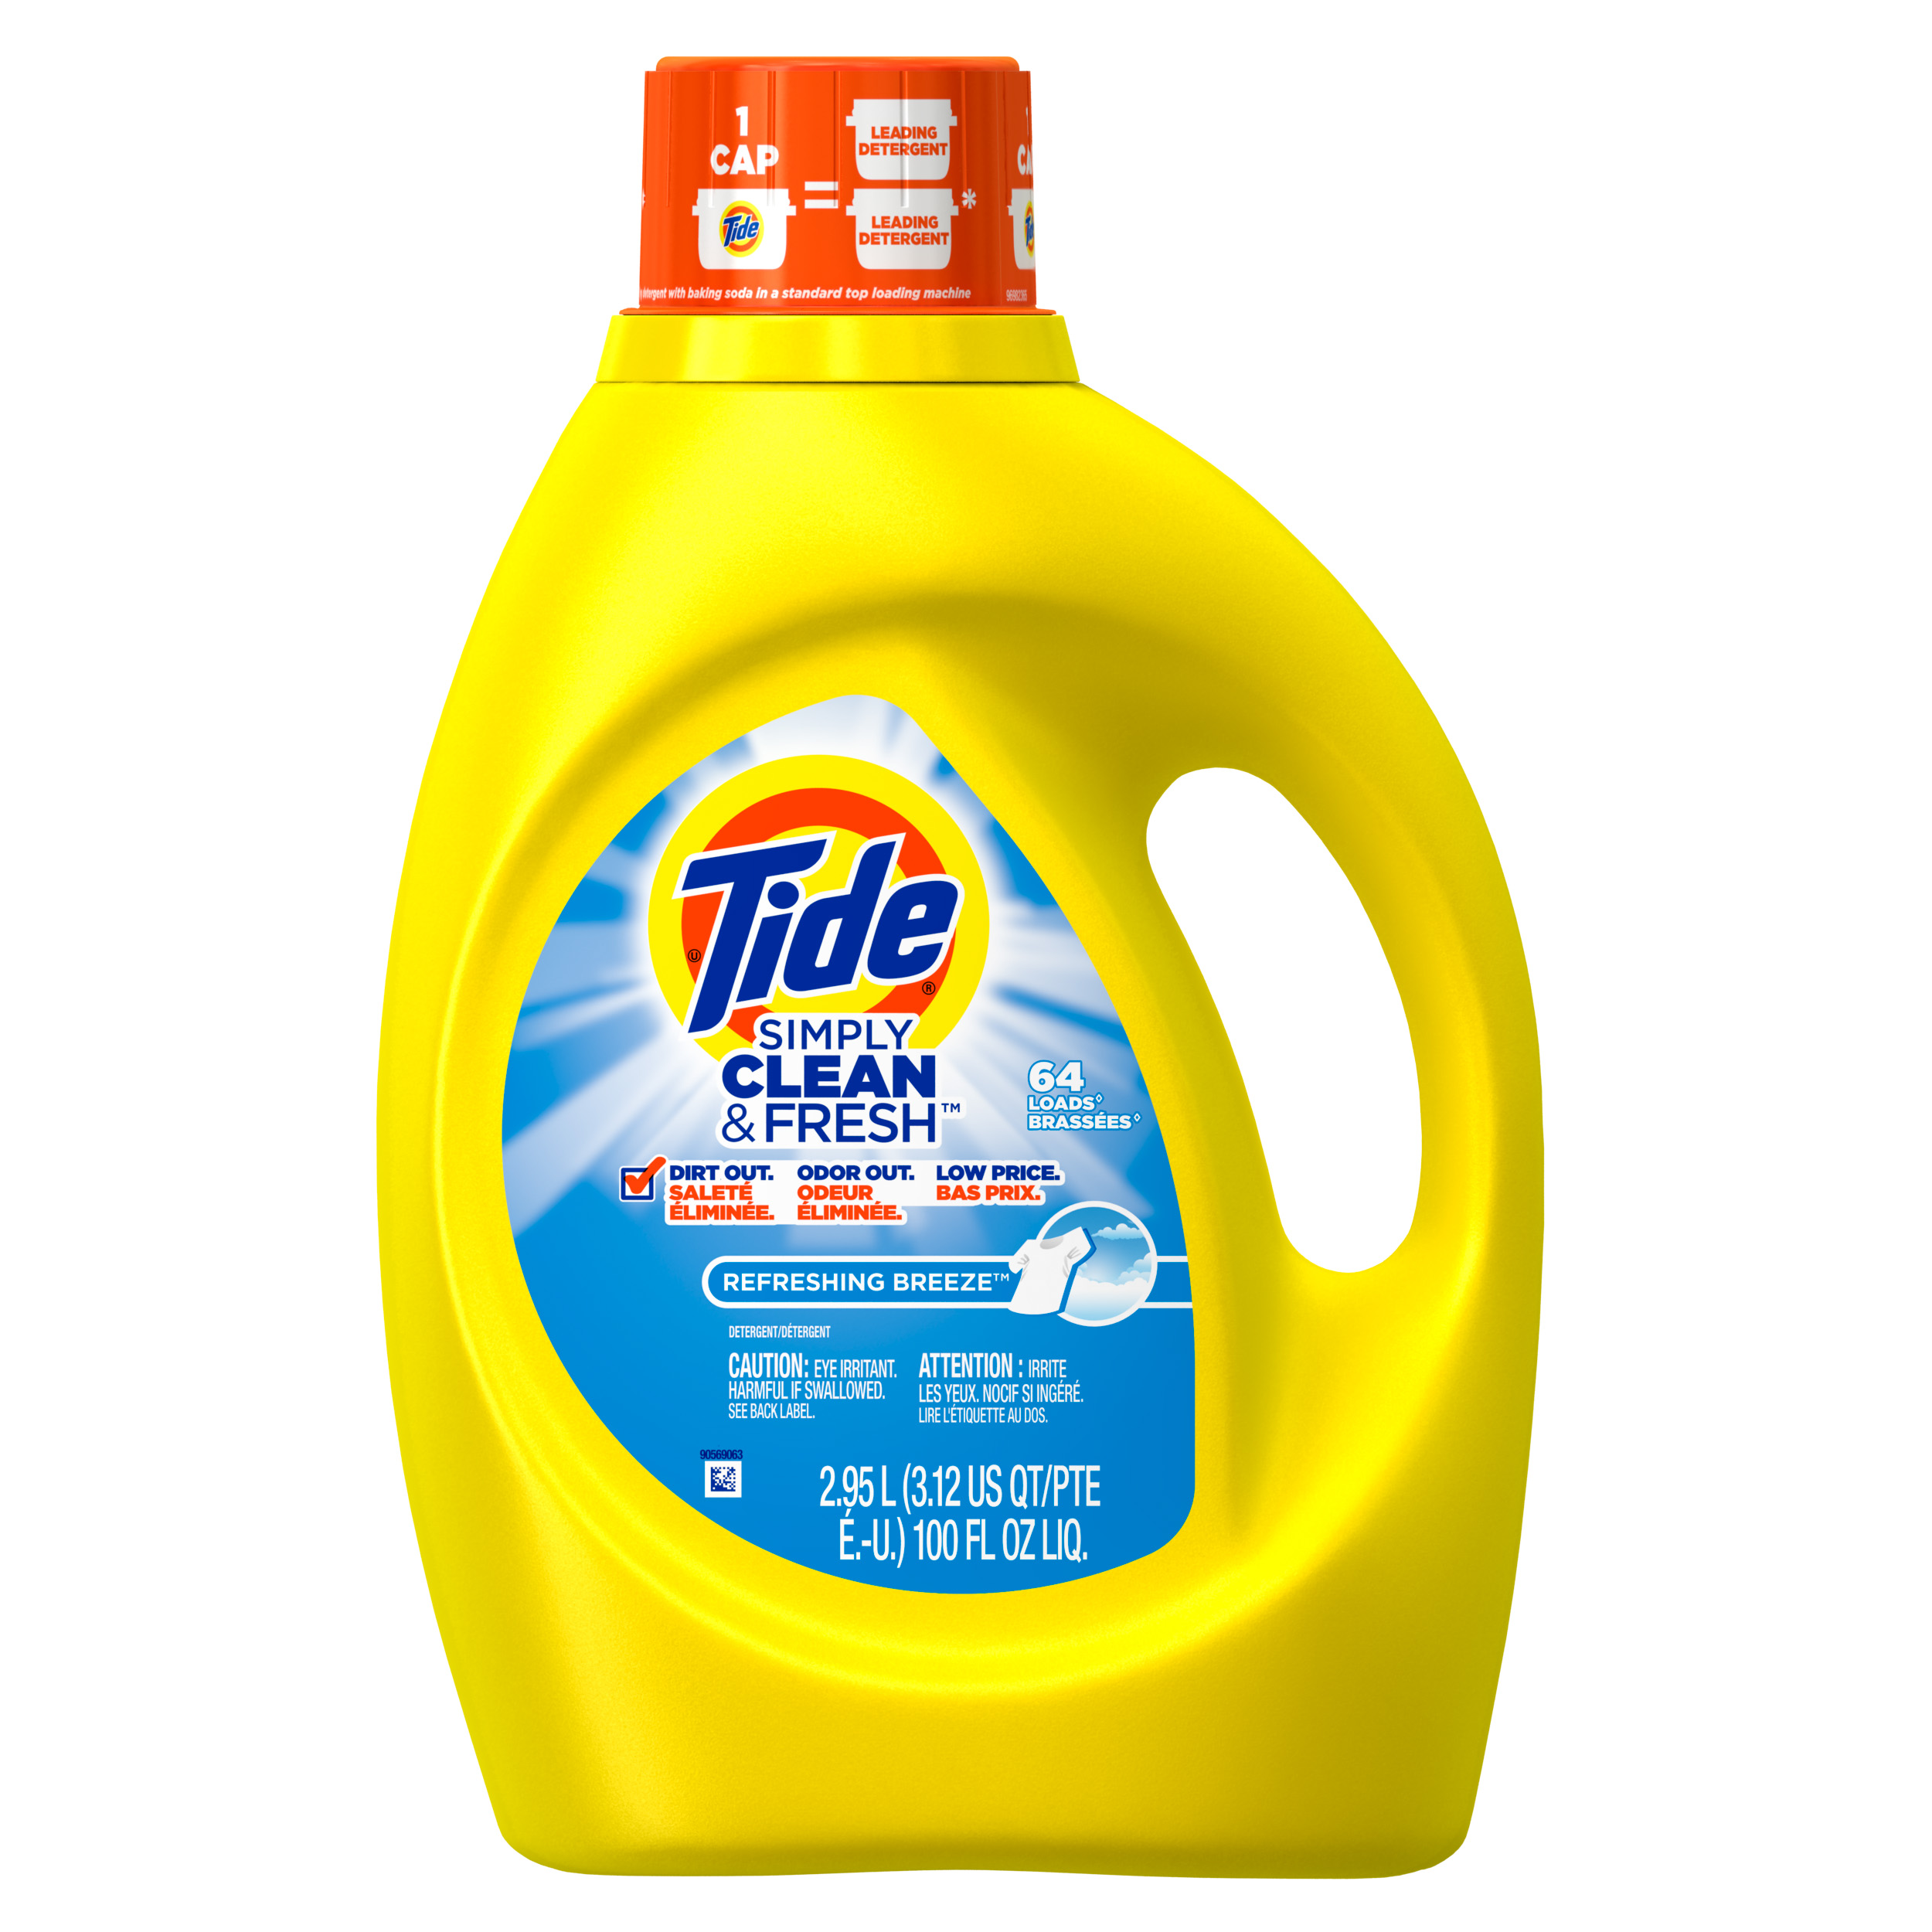 Tide Simply Clean & Fresh HE Liquid Laundry Detergent, Refreshing Breeze Scent, 64 Loads, 100 Oz